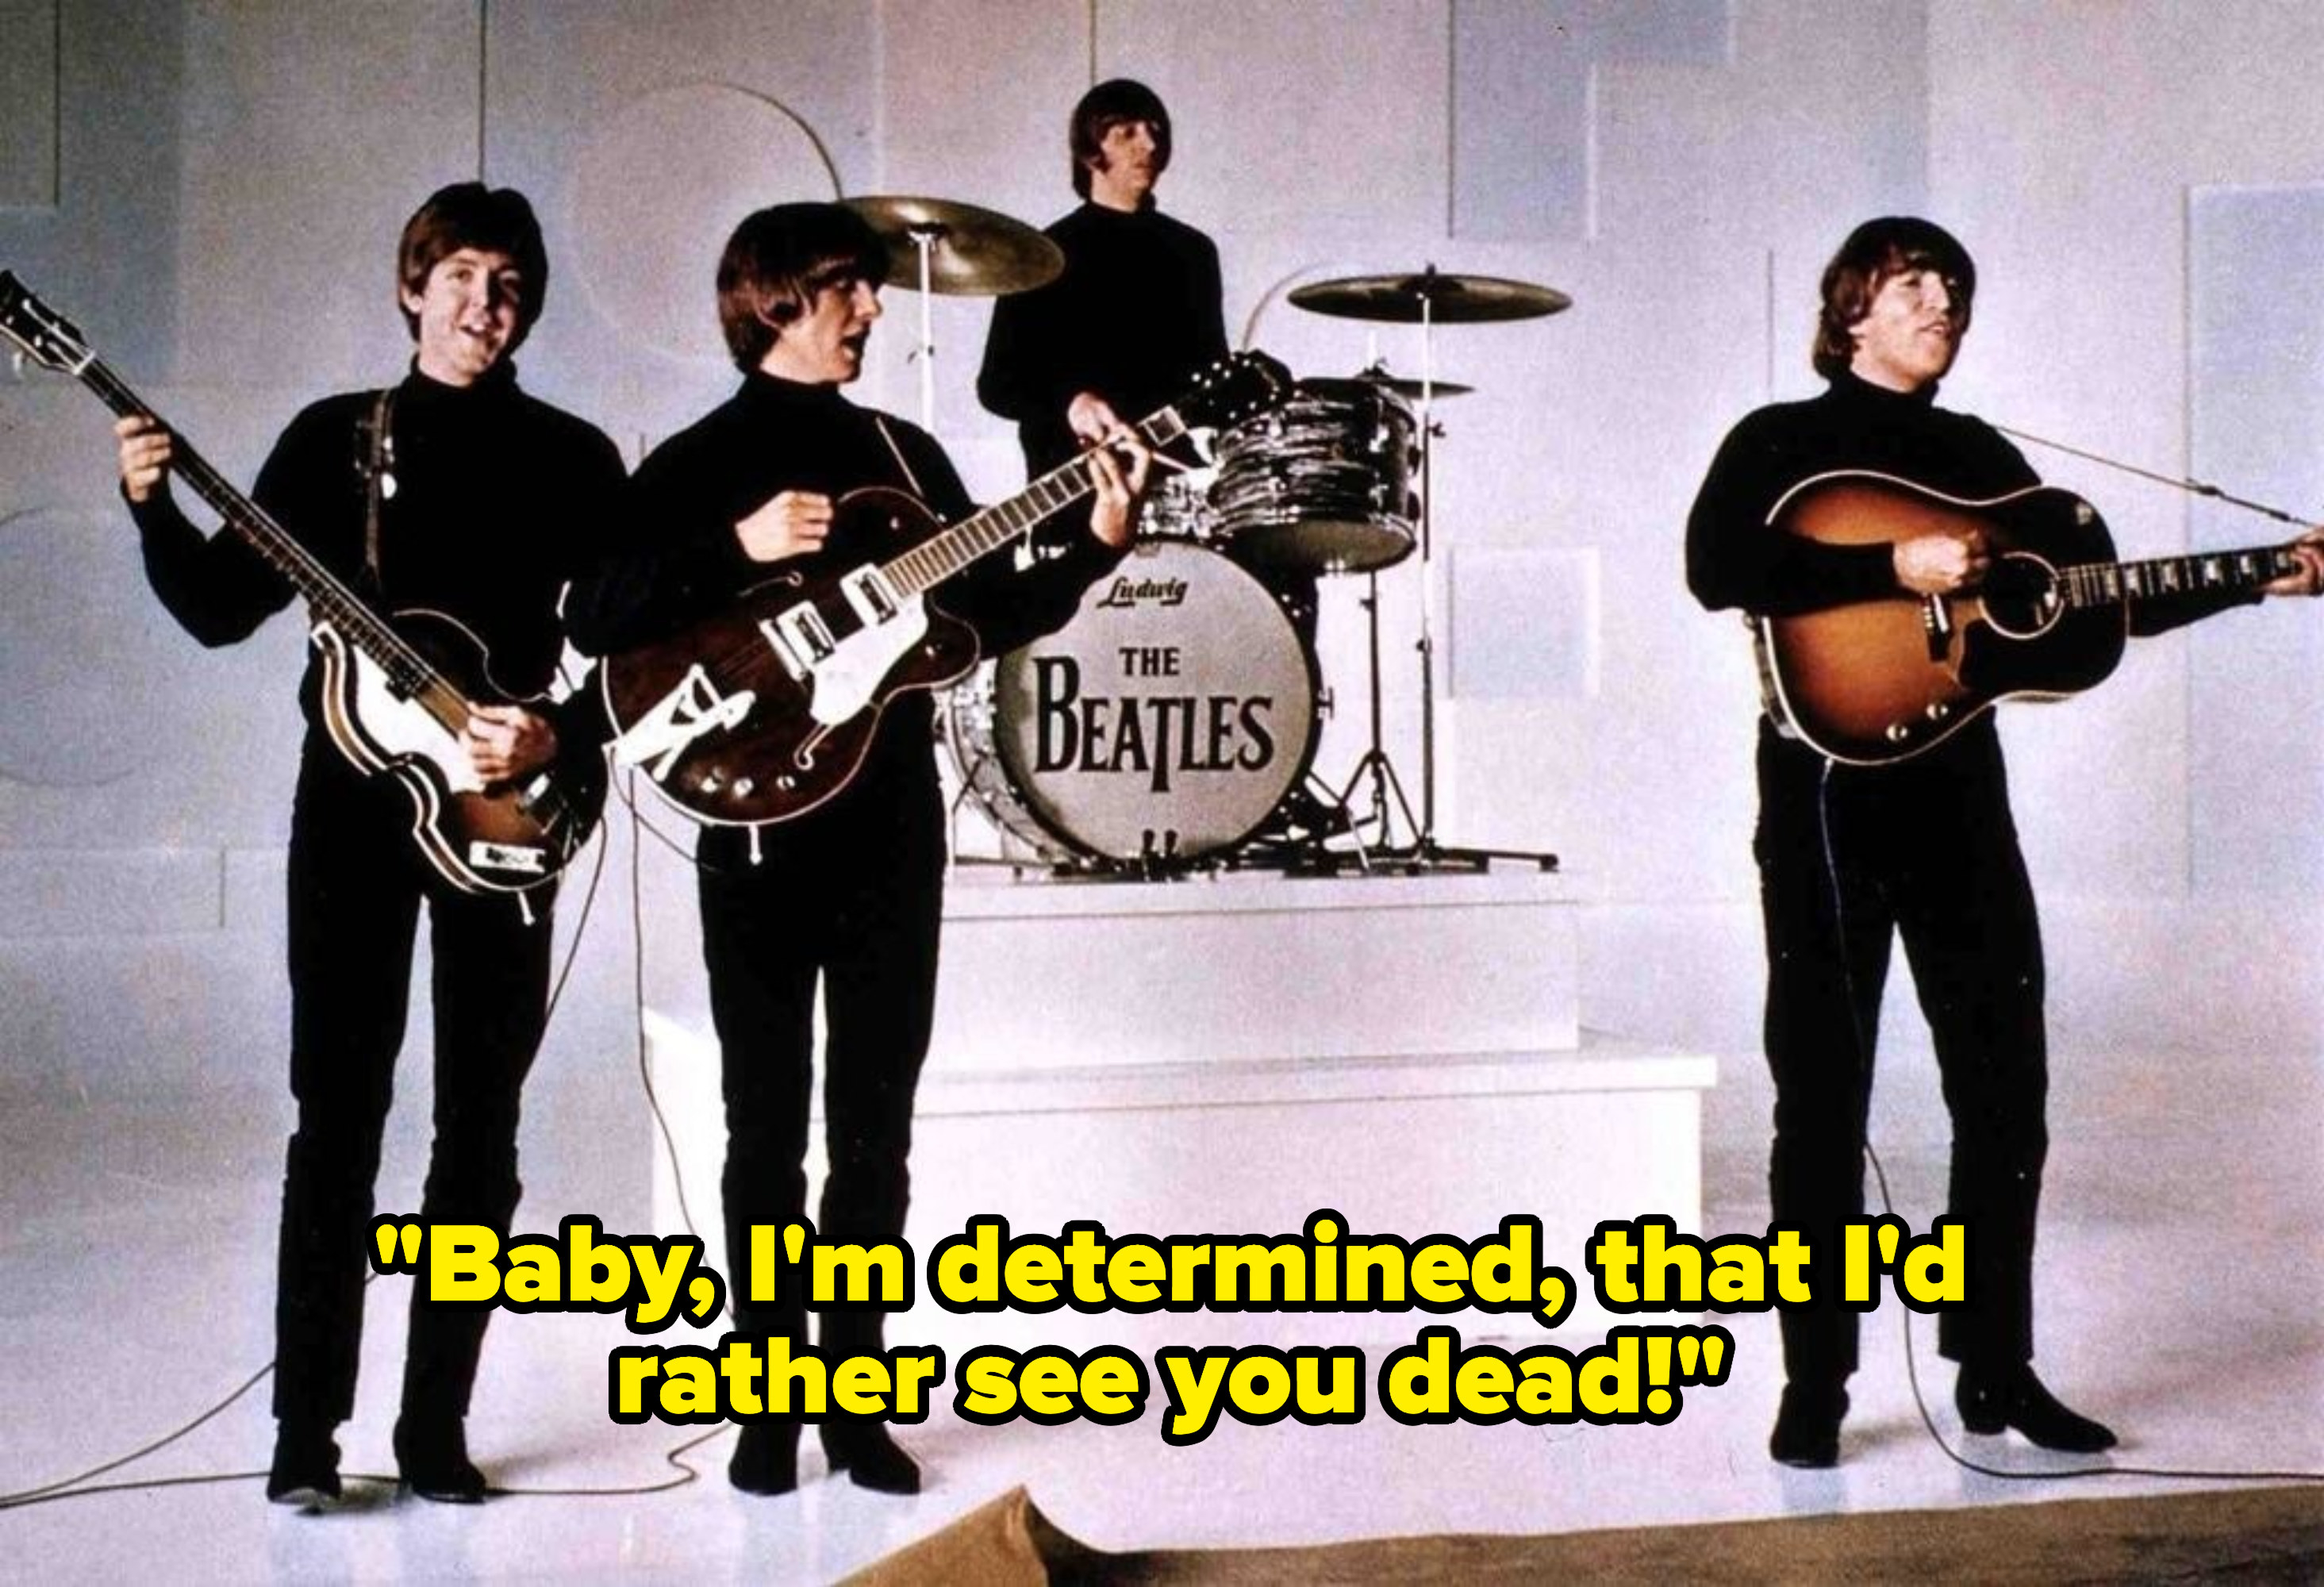 """Beatles performing and lyrics, """"Baby I'm determined, that I'd rather see you dead"""""""